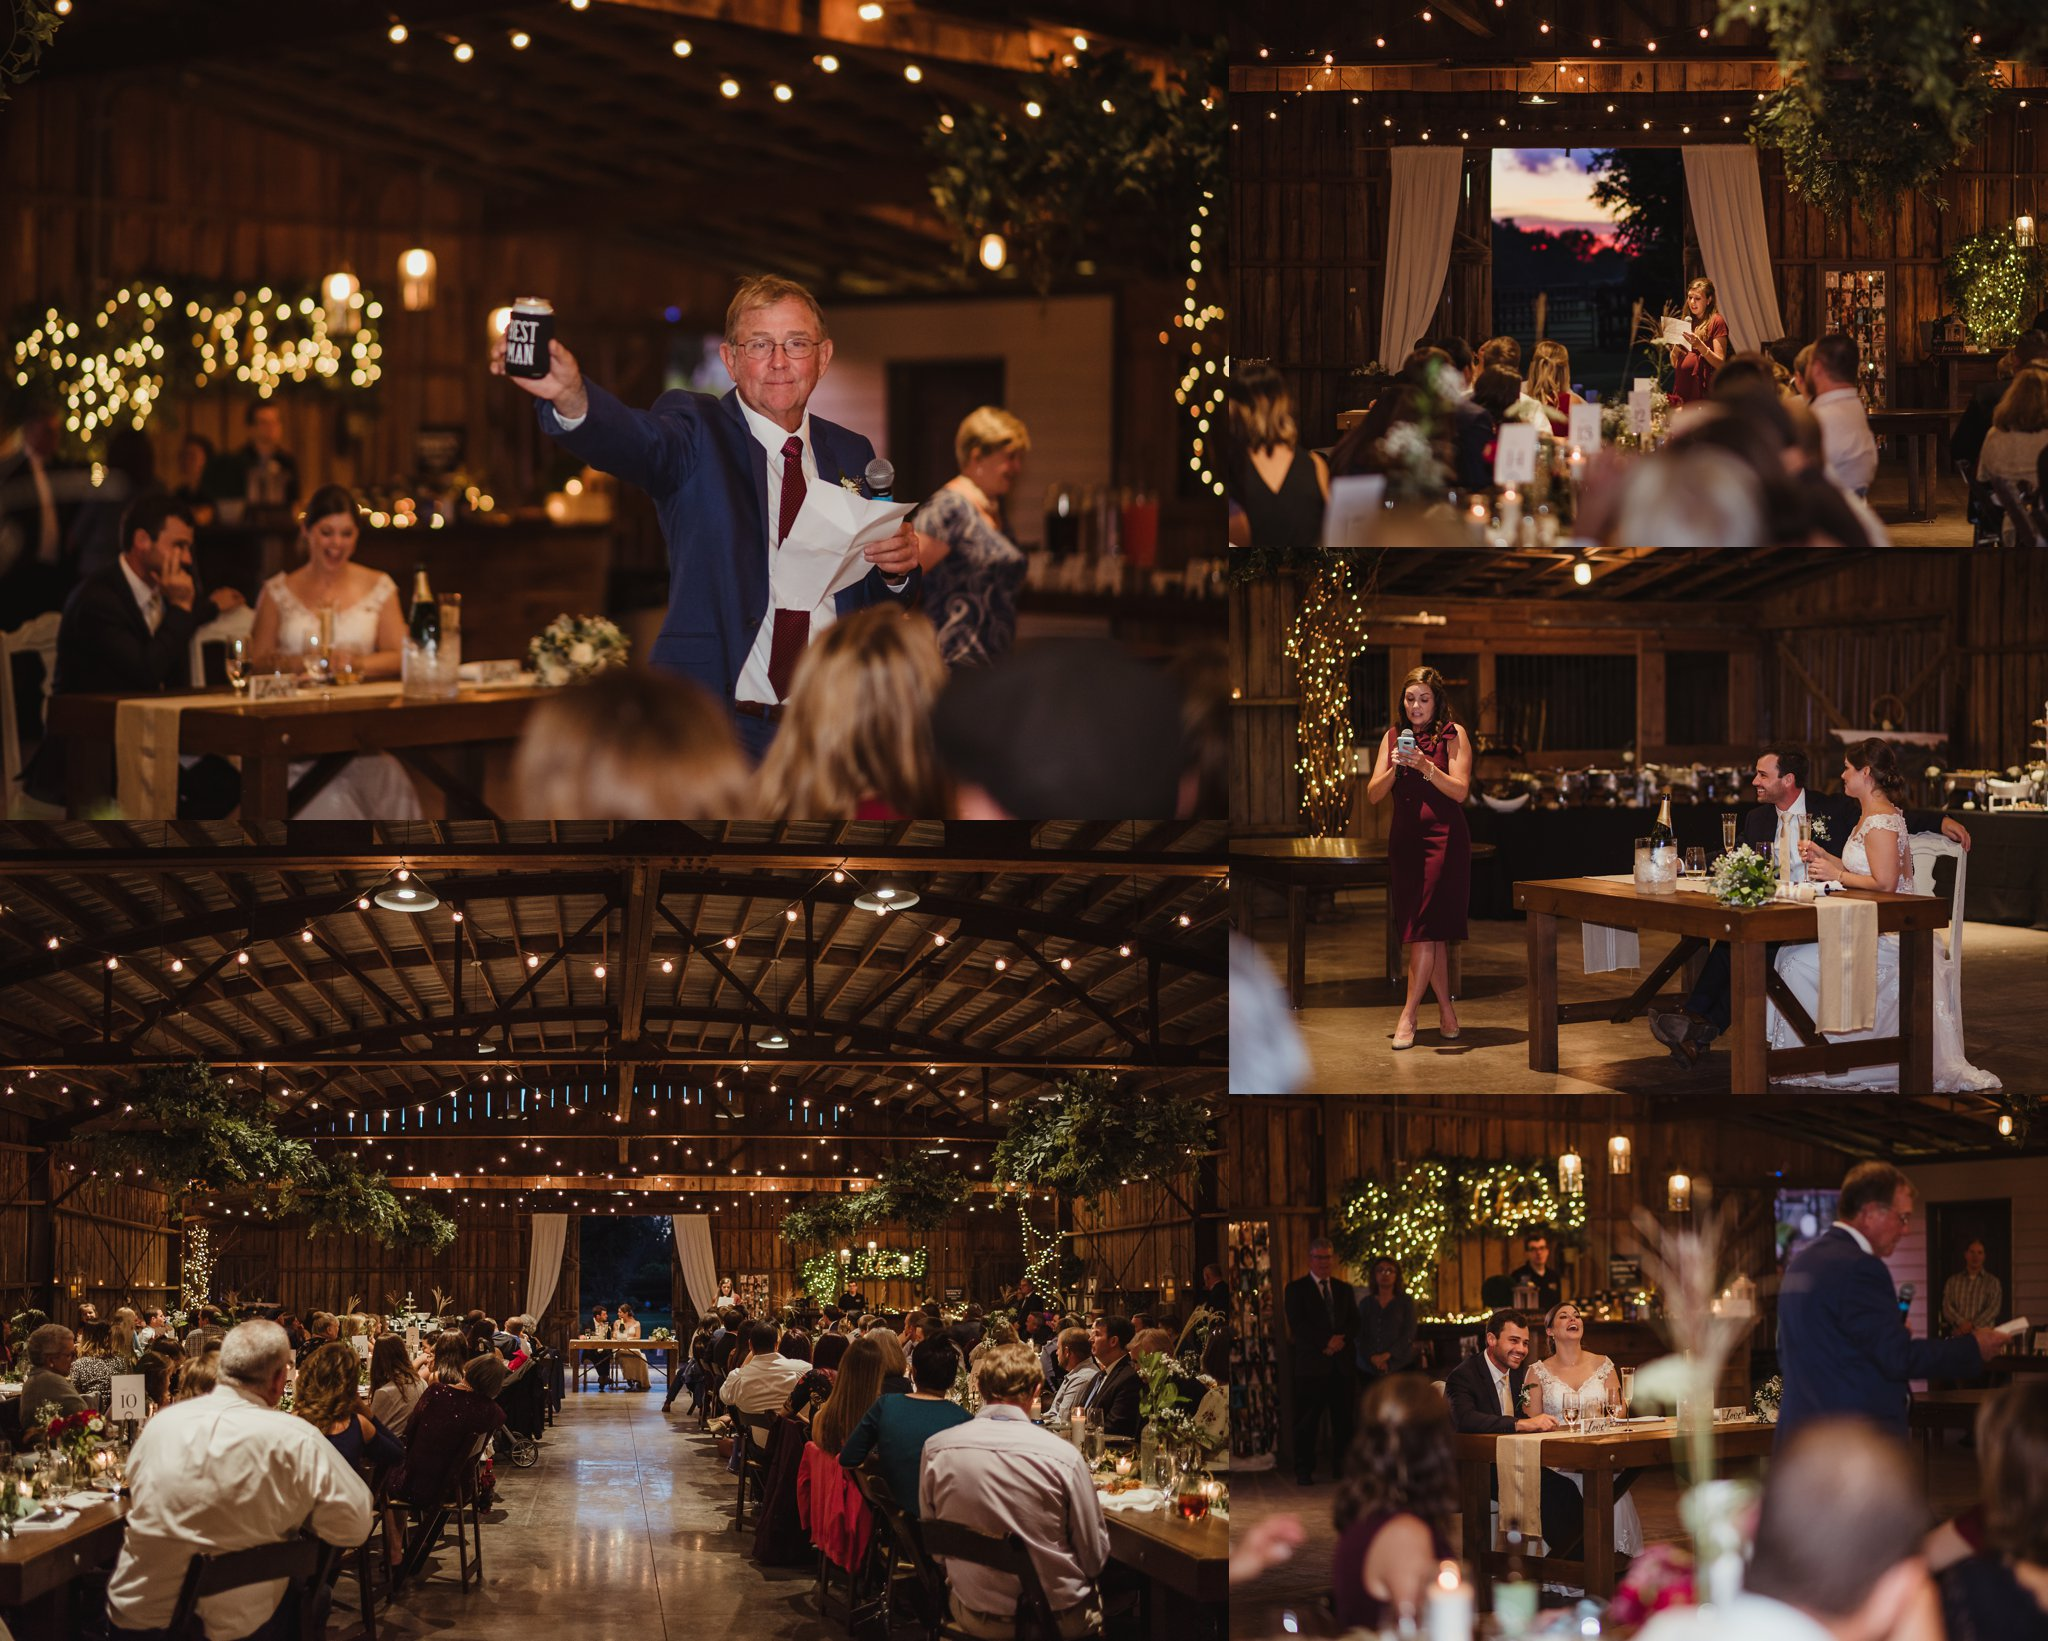 Toasts were given to the bride and groom during their wedding reception at the Little Herb House in Raleigh, North Carolina. Photos by Rose Trail Images.